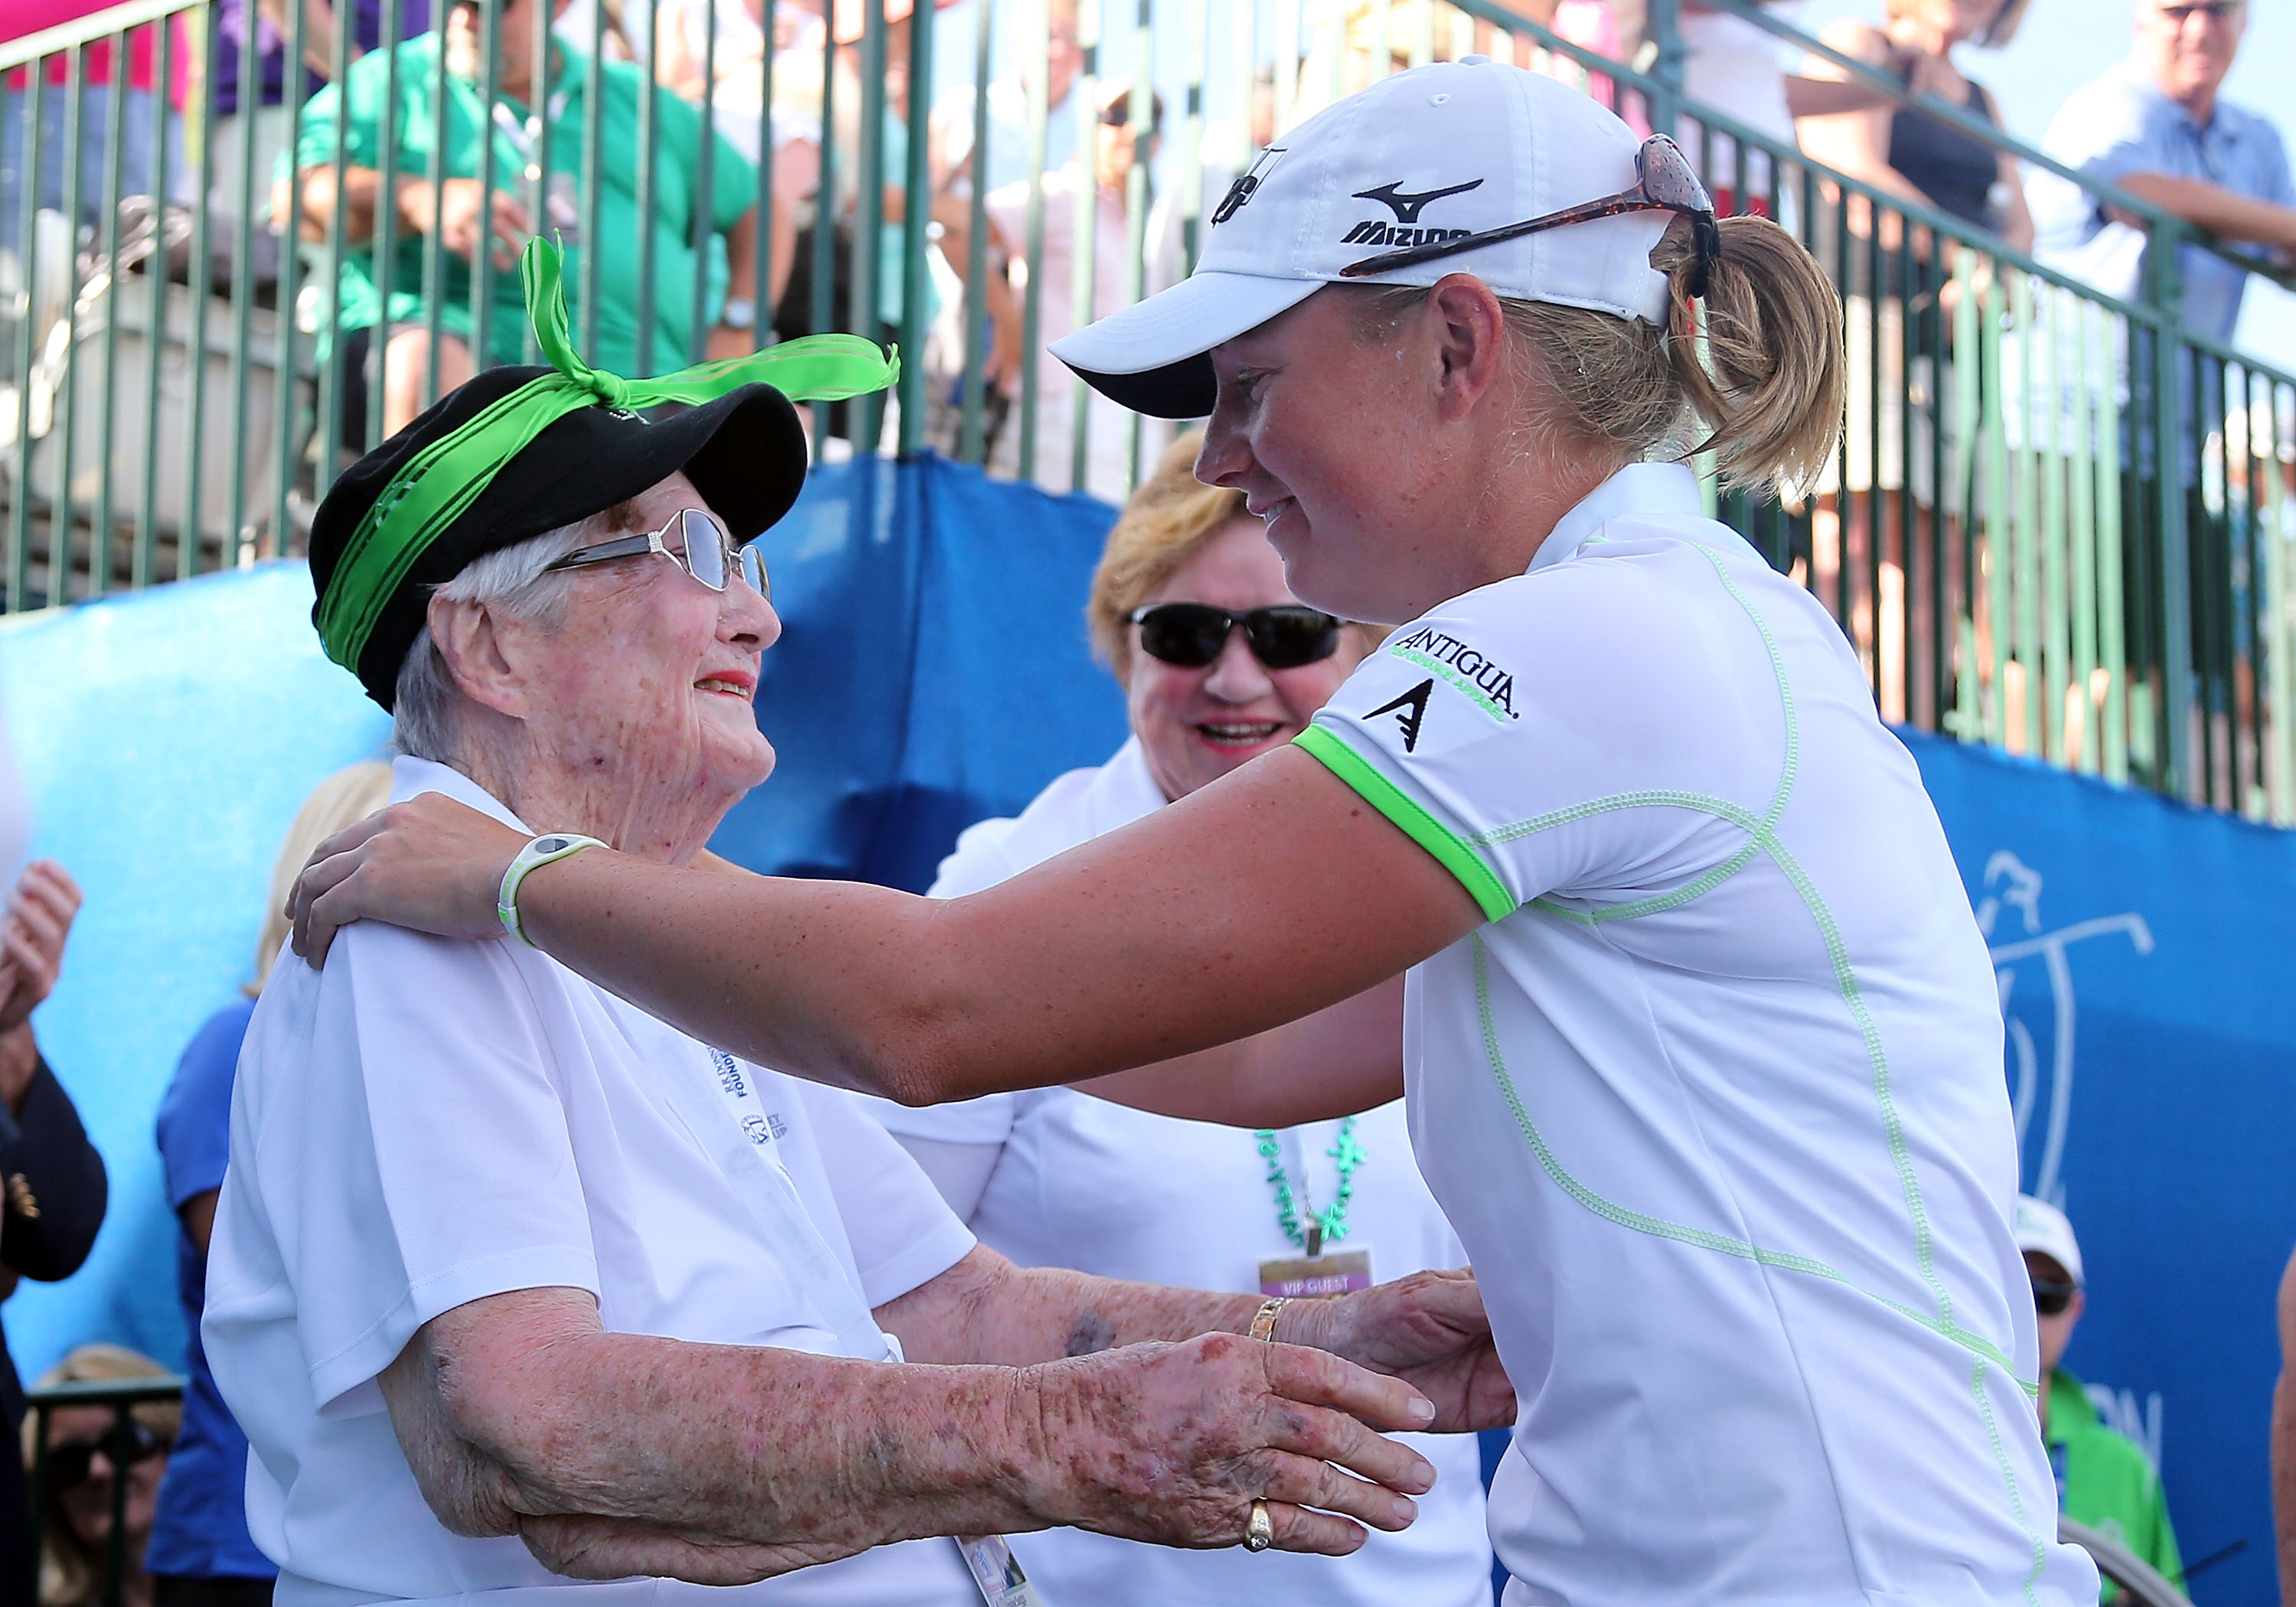 LPGA Tour pro Stacy Lewis greets Louise Suggs during the final round of the 2013 LPGA Founders Cup.